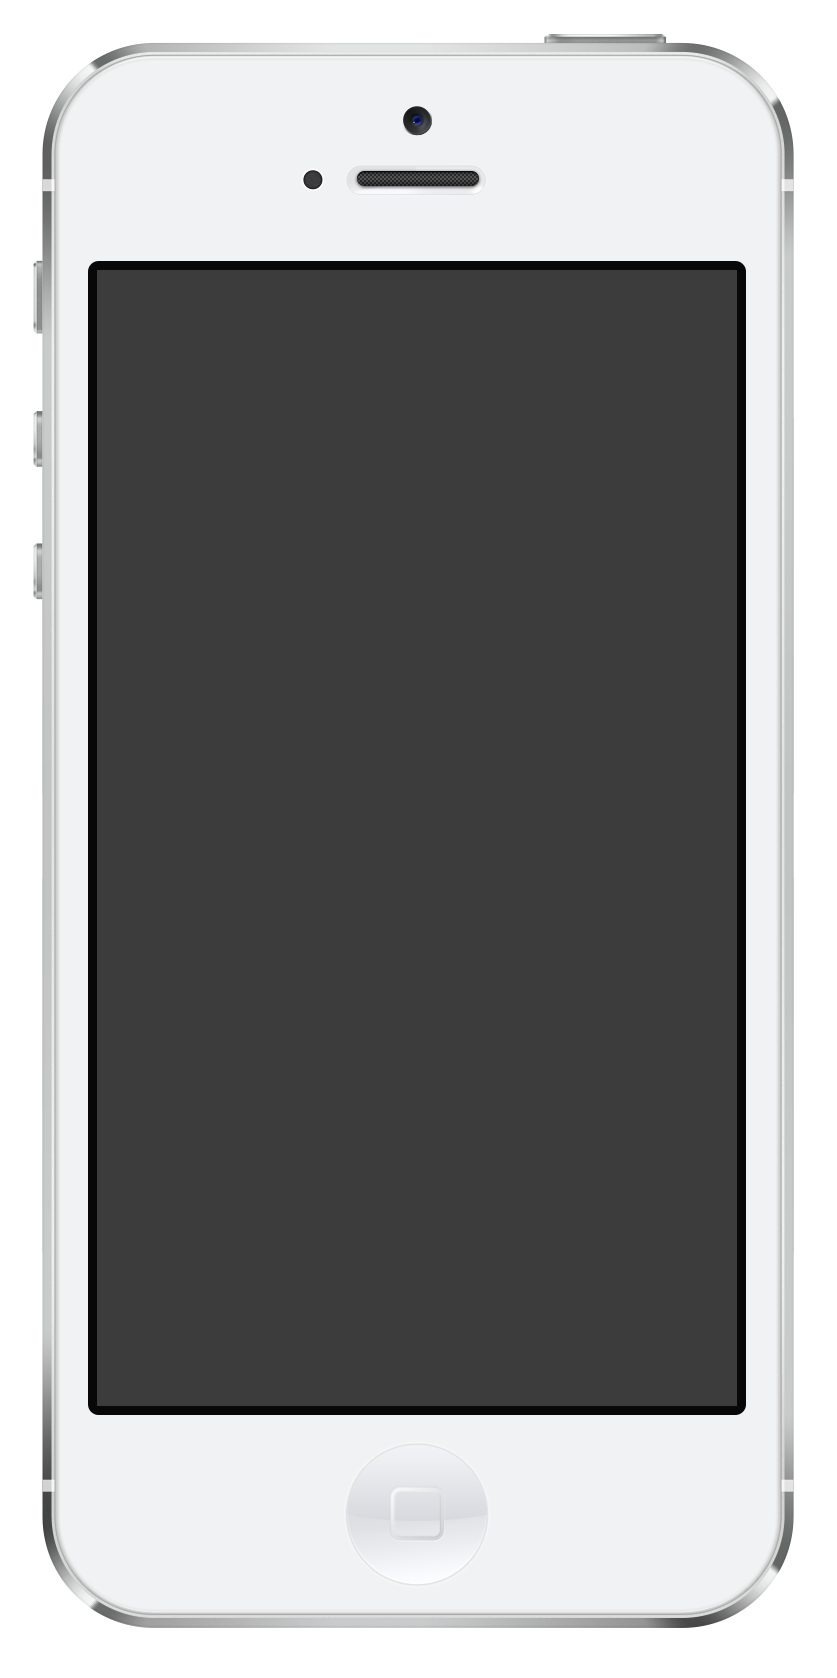 Iphone PNG Black And White - 52193